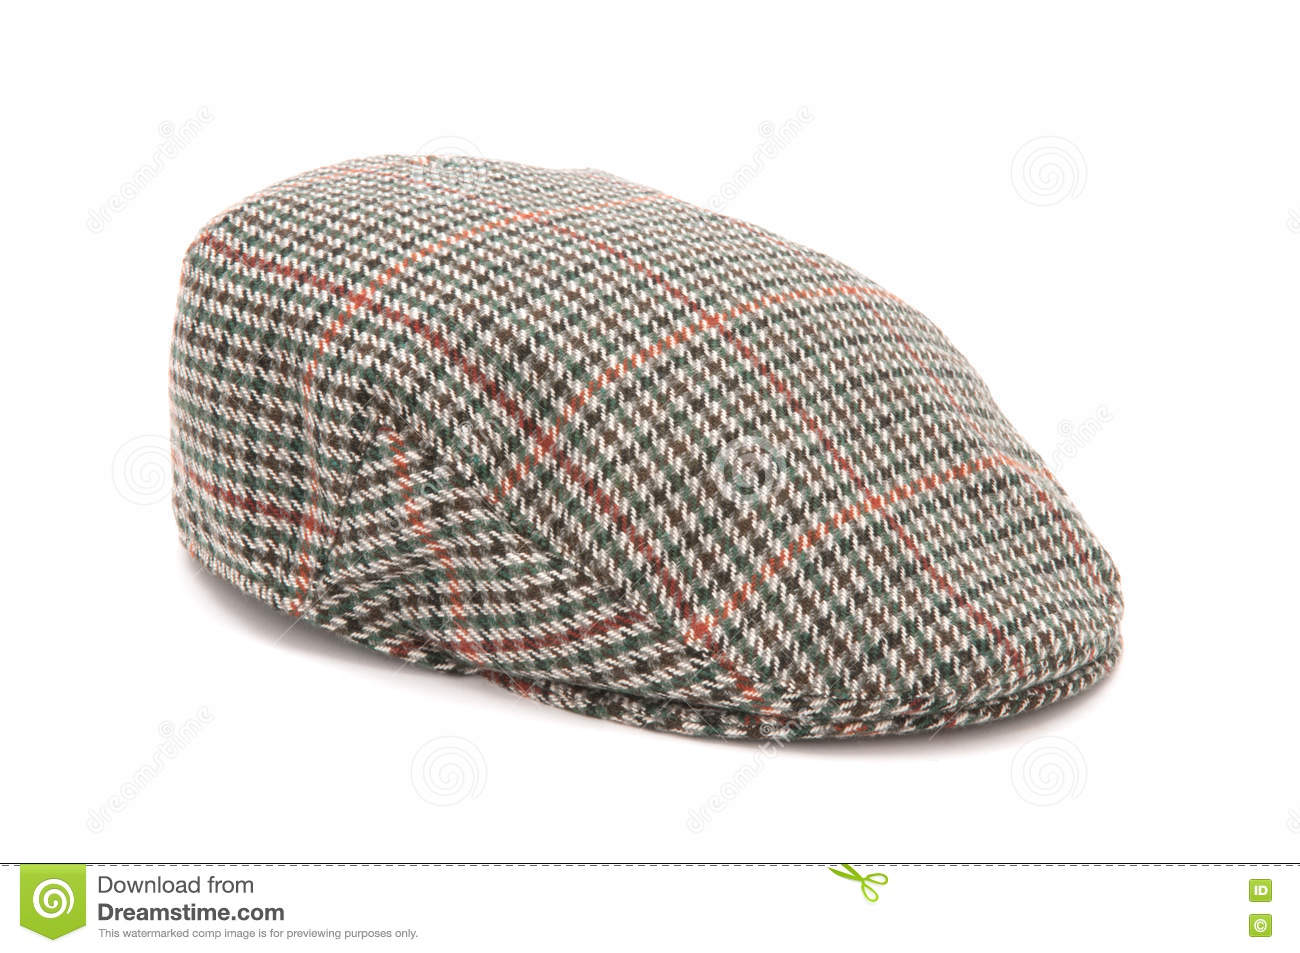 10432ed5840 Houndstooth Tweed Hunting Flat Cap Stock Image - Image of isolated ...